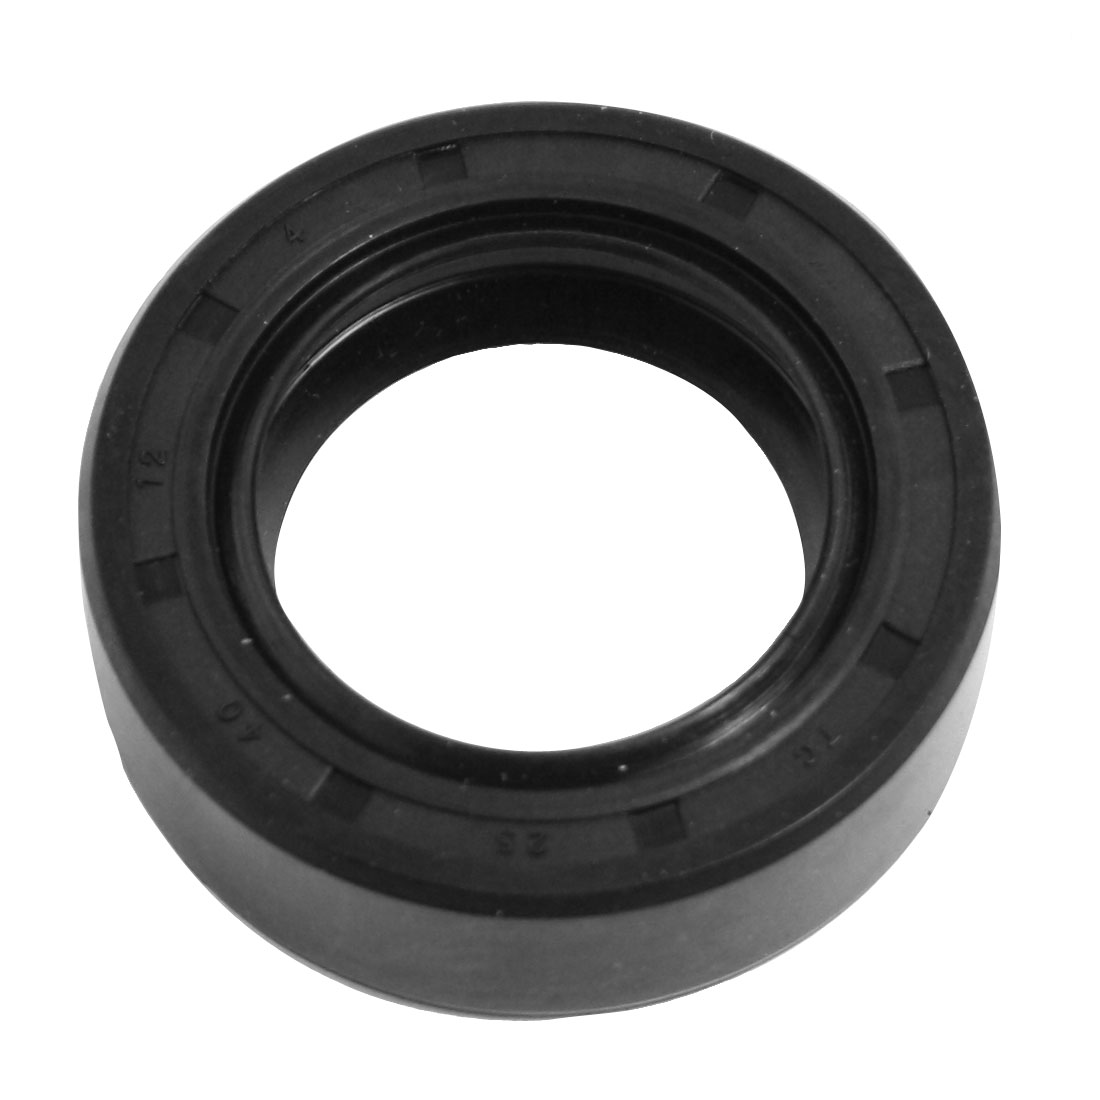 Black Nitrile Rubber Double Lip TC Oil Shaft Seal 25mm x 40mm x 12mm